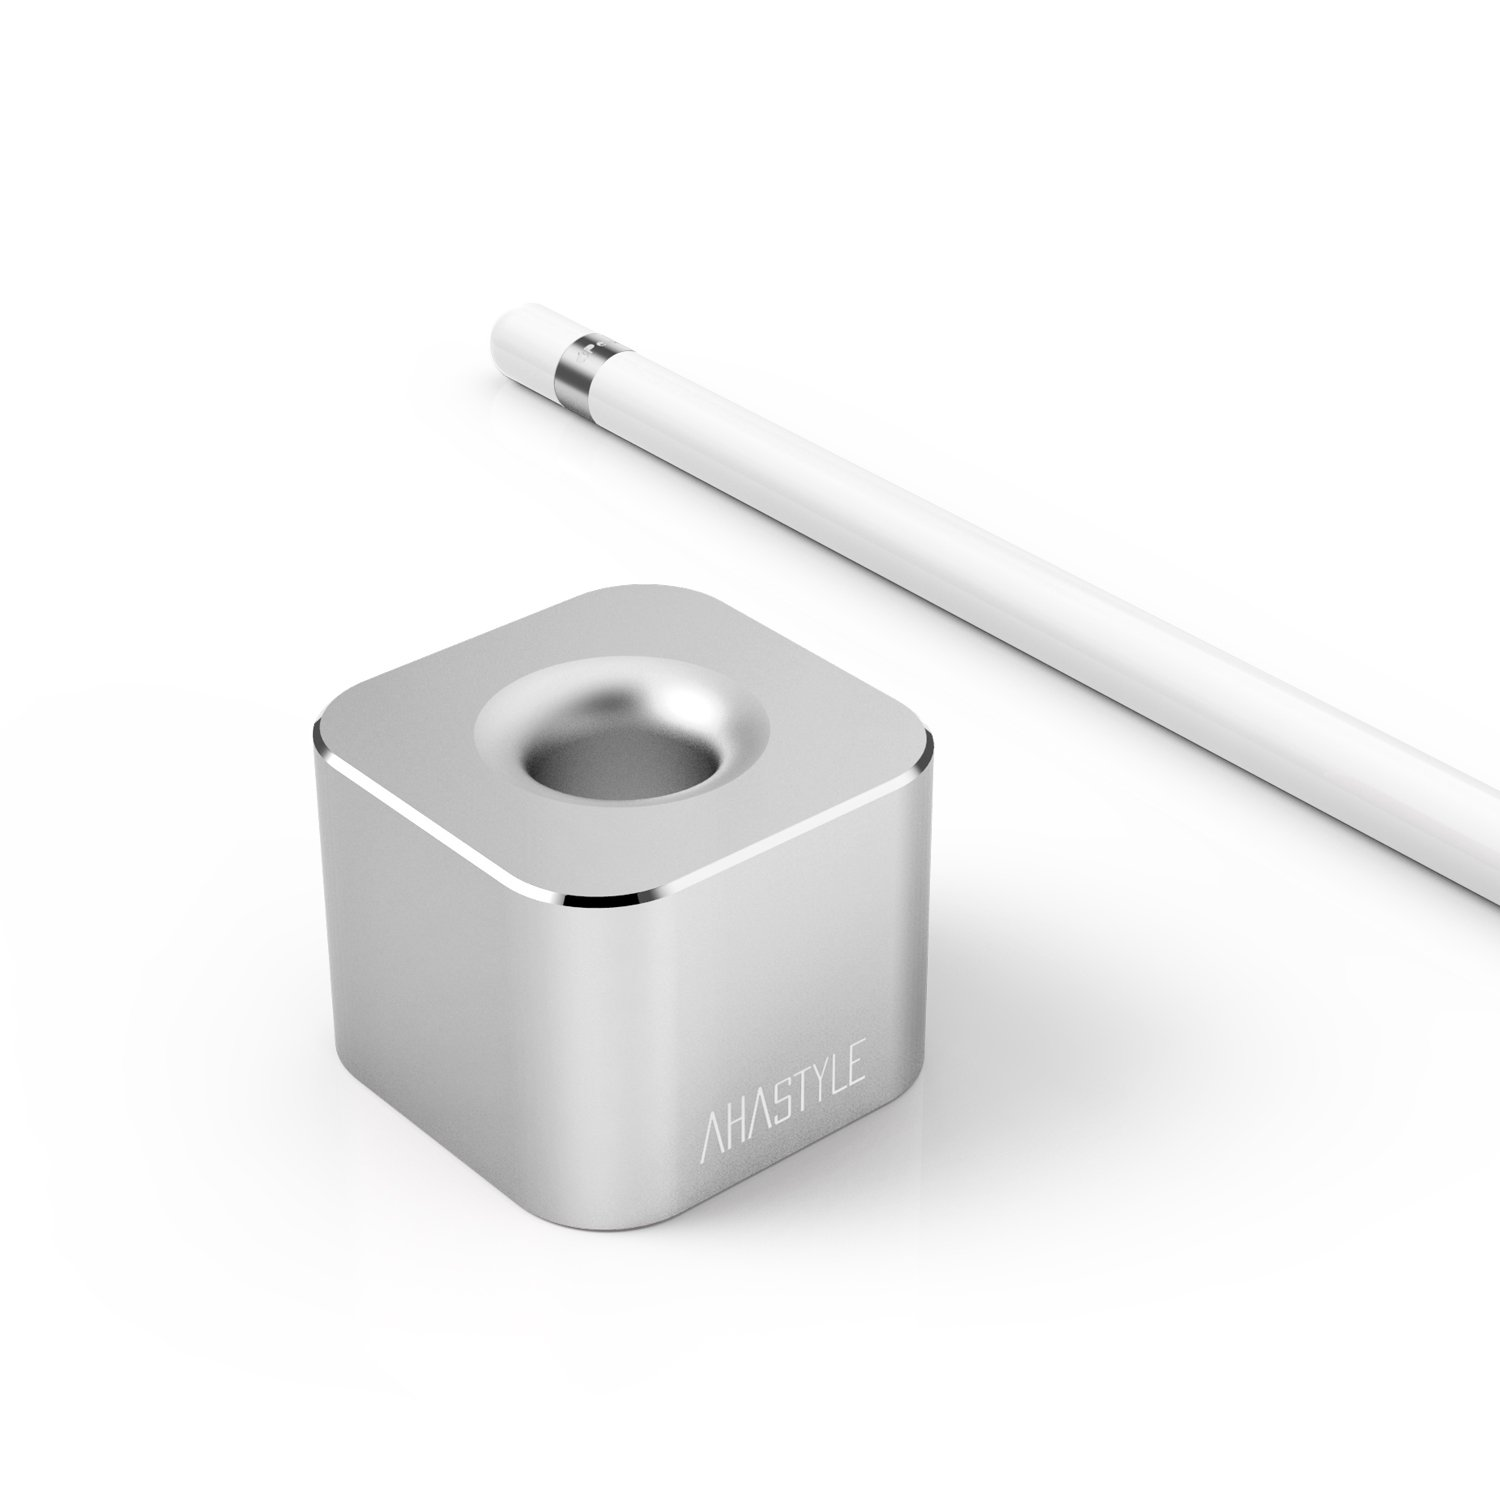 Apple Pencil Stand,AhaStyle Premium Solid Aluminium Stylus Stand for iPad Pro Pencil.(Silver)